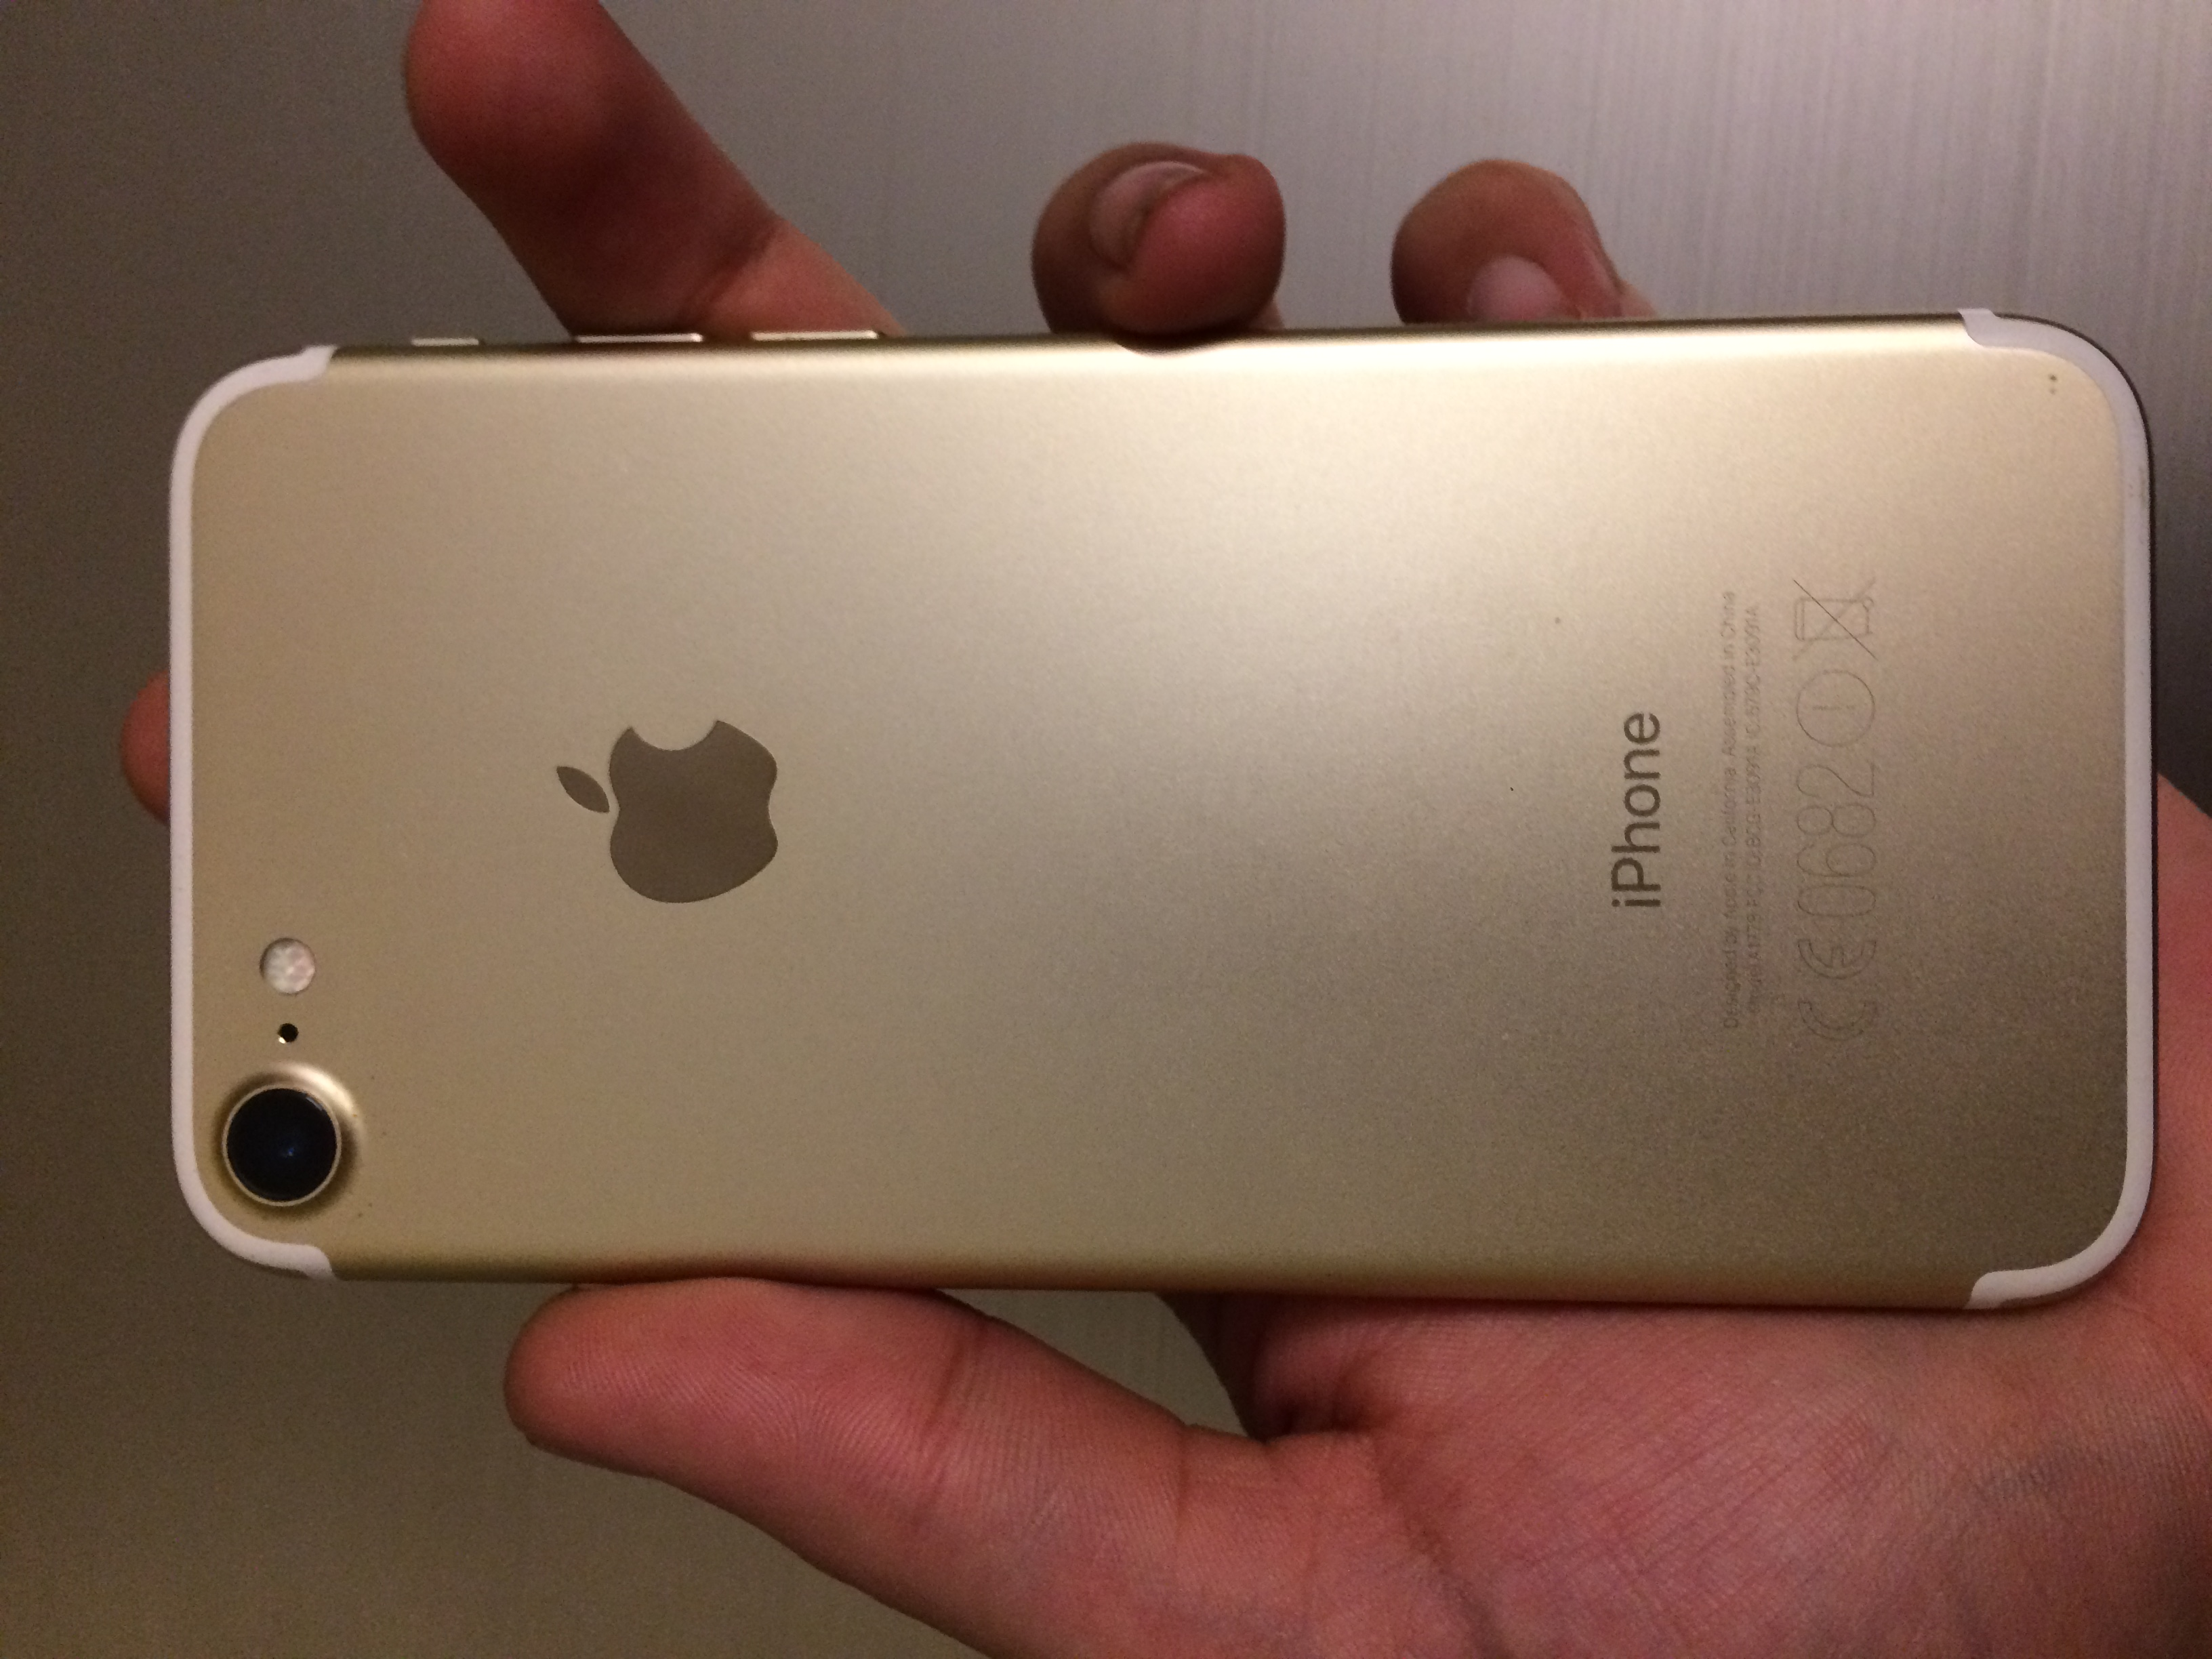 Iphone 7 (128 gb) with BOX - photo 1